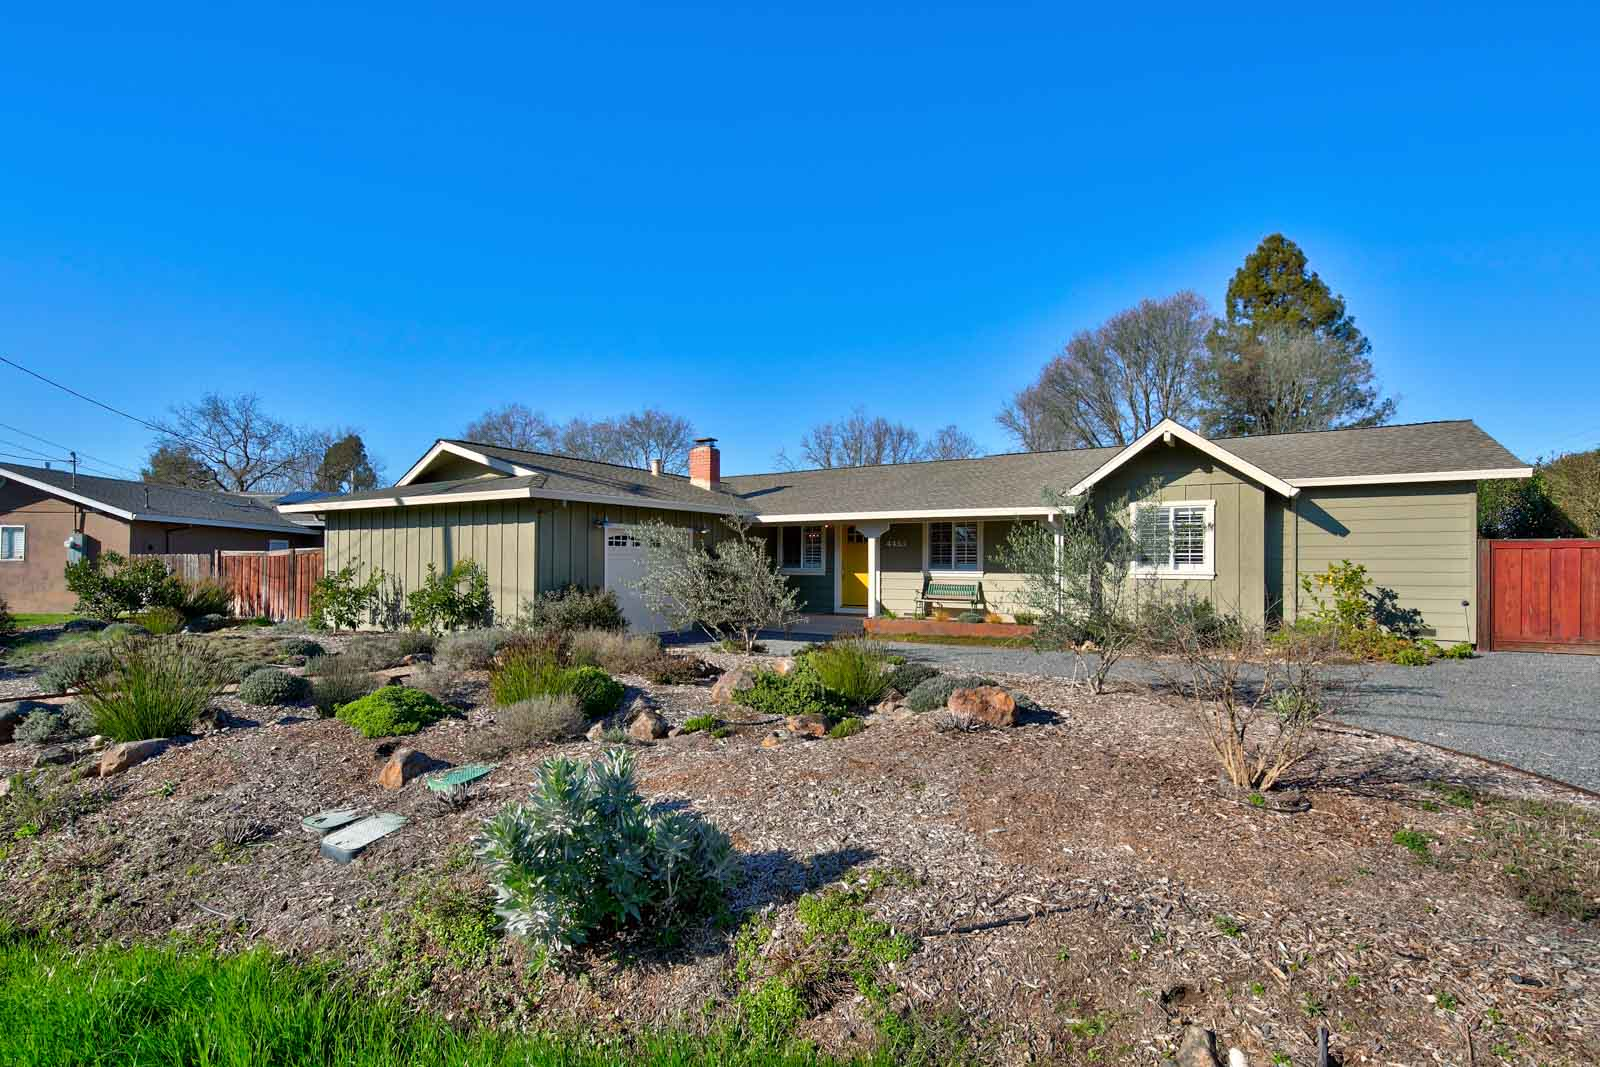 6694 NORCLIFF DRIVE    more information